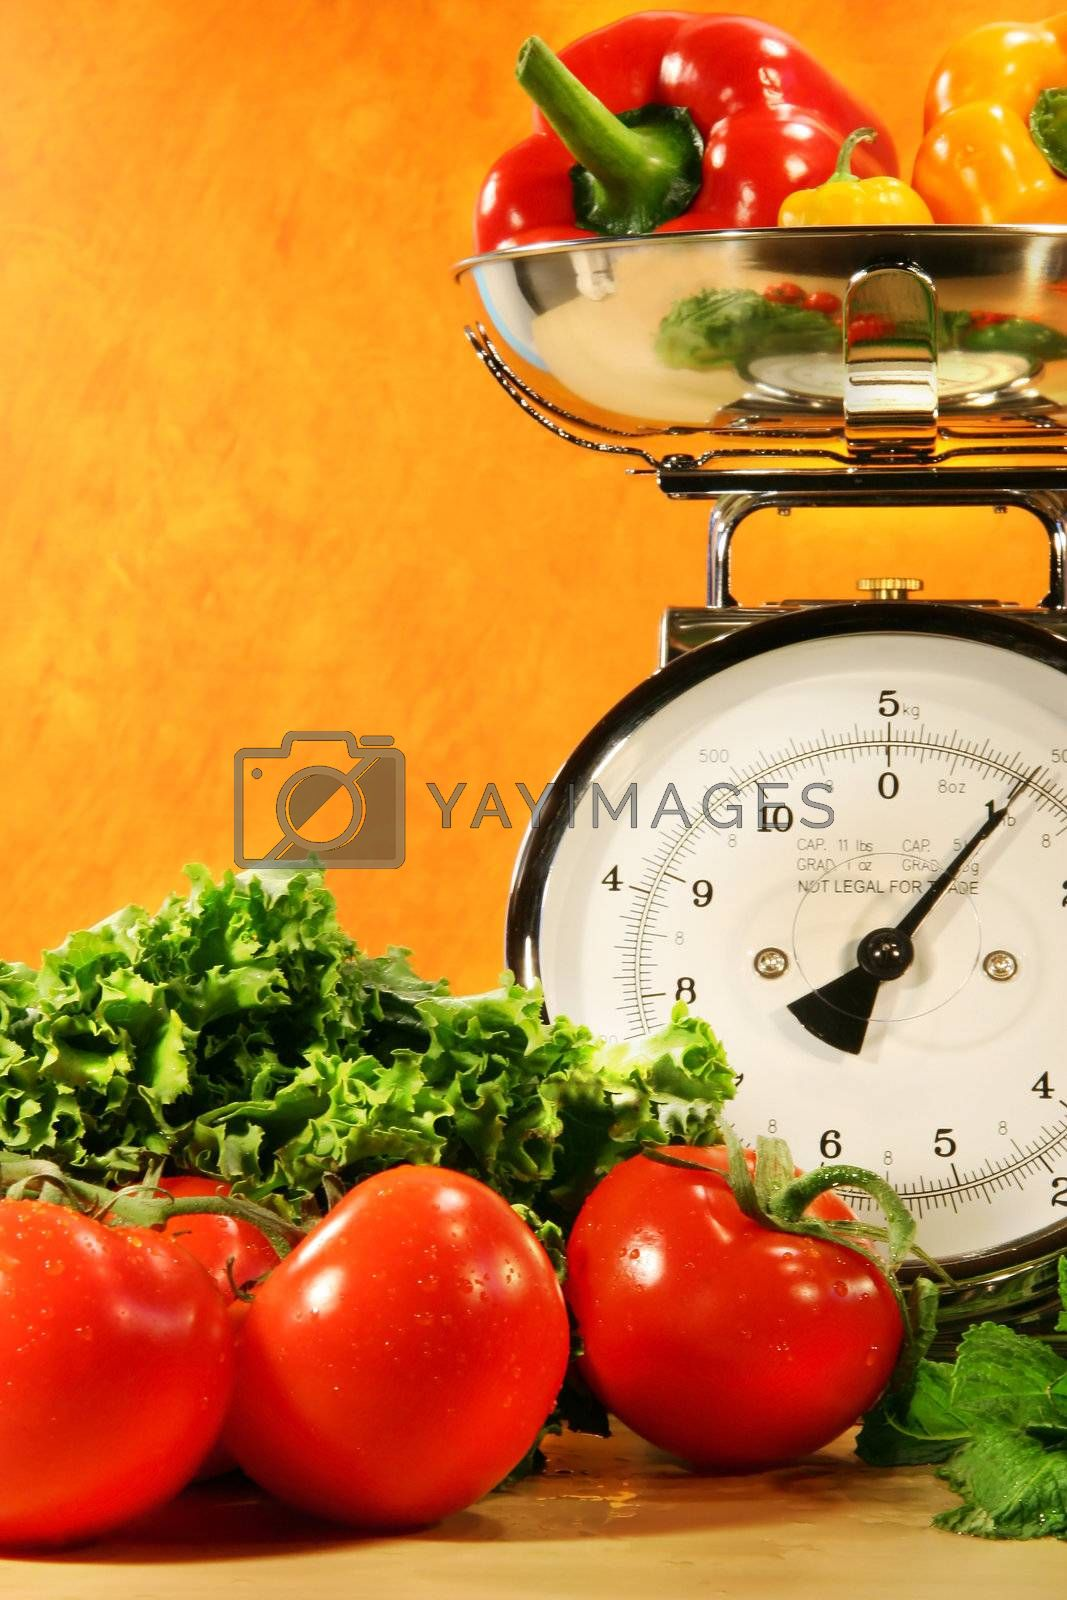 Vegetables on the counter surface with food scale